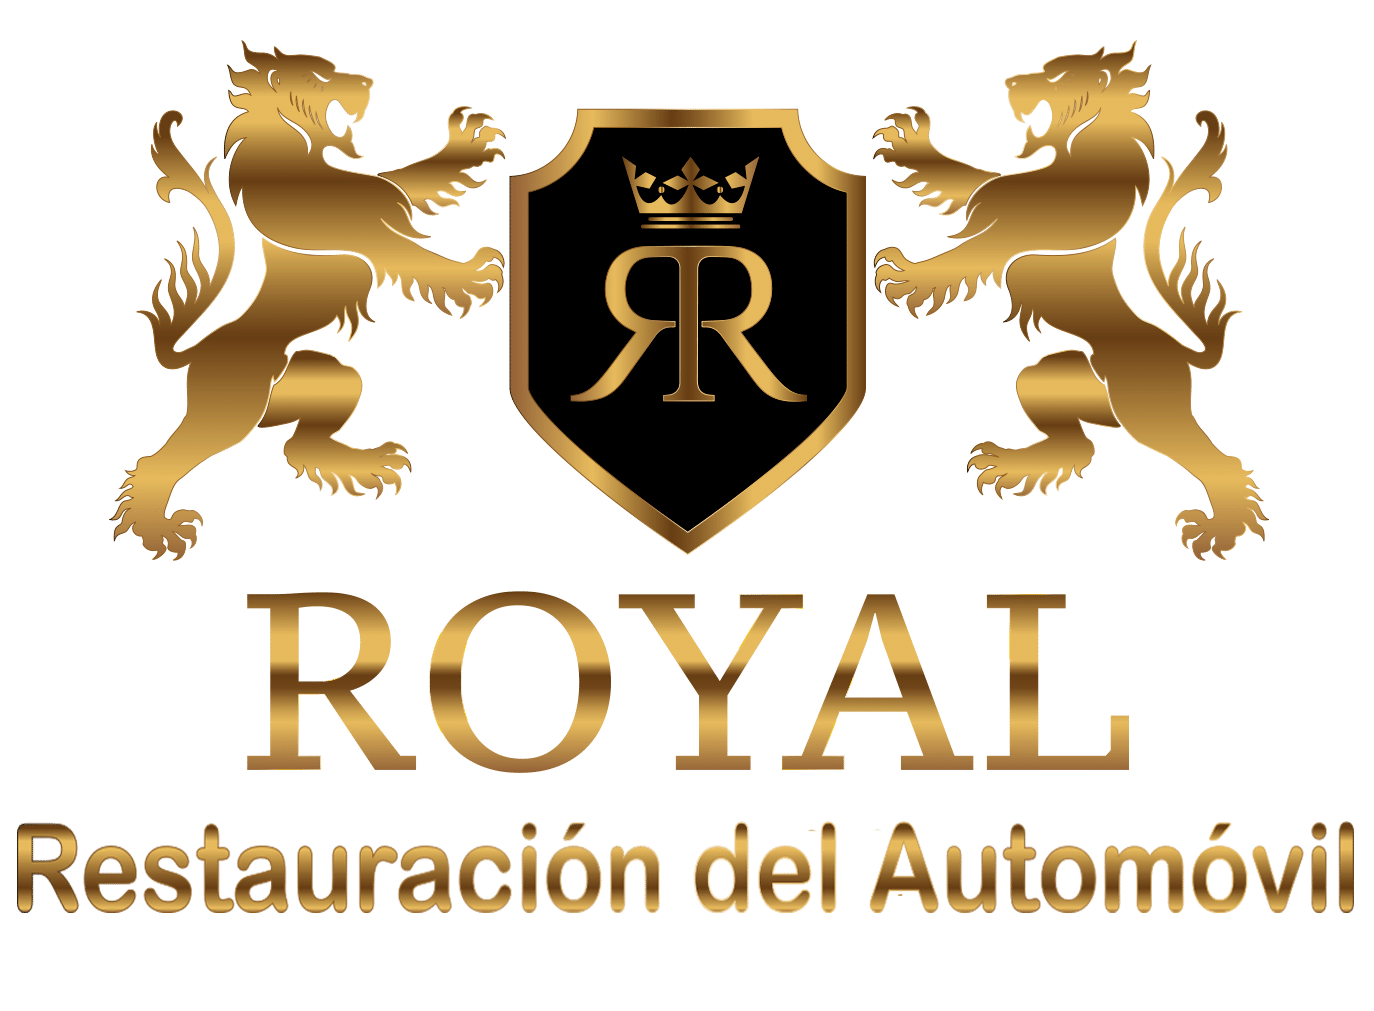 Royal Restauración